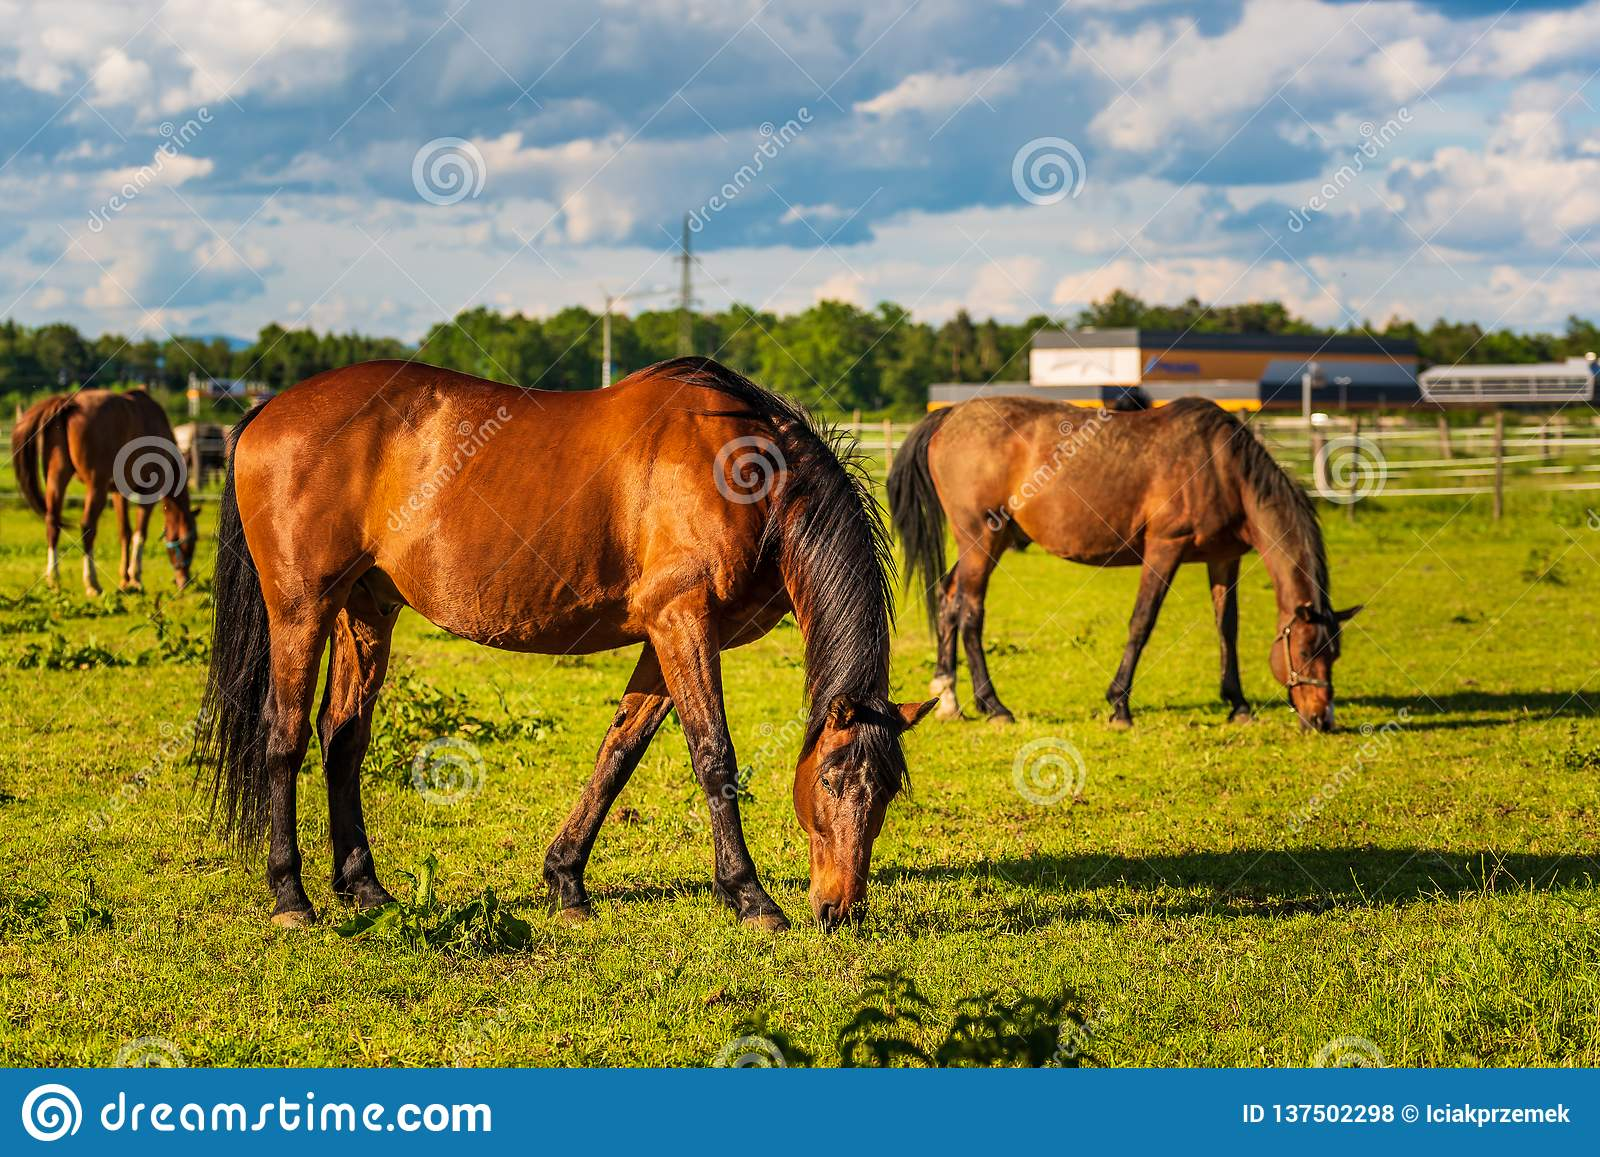 Three Beautiful horses grazing in lush green sunlit pasture outdoors summer